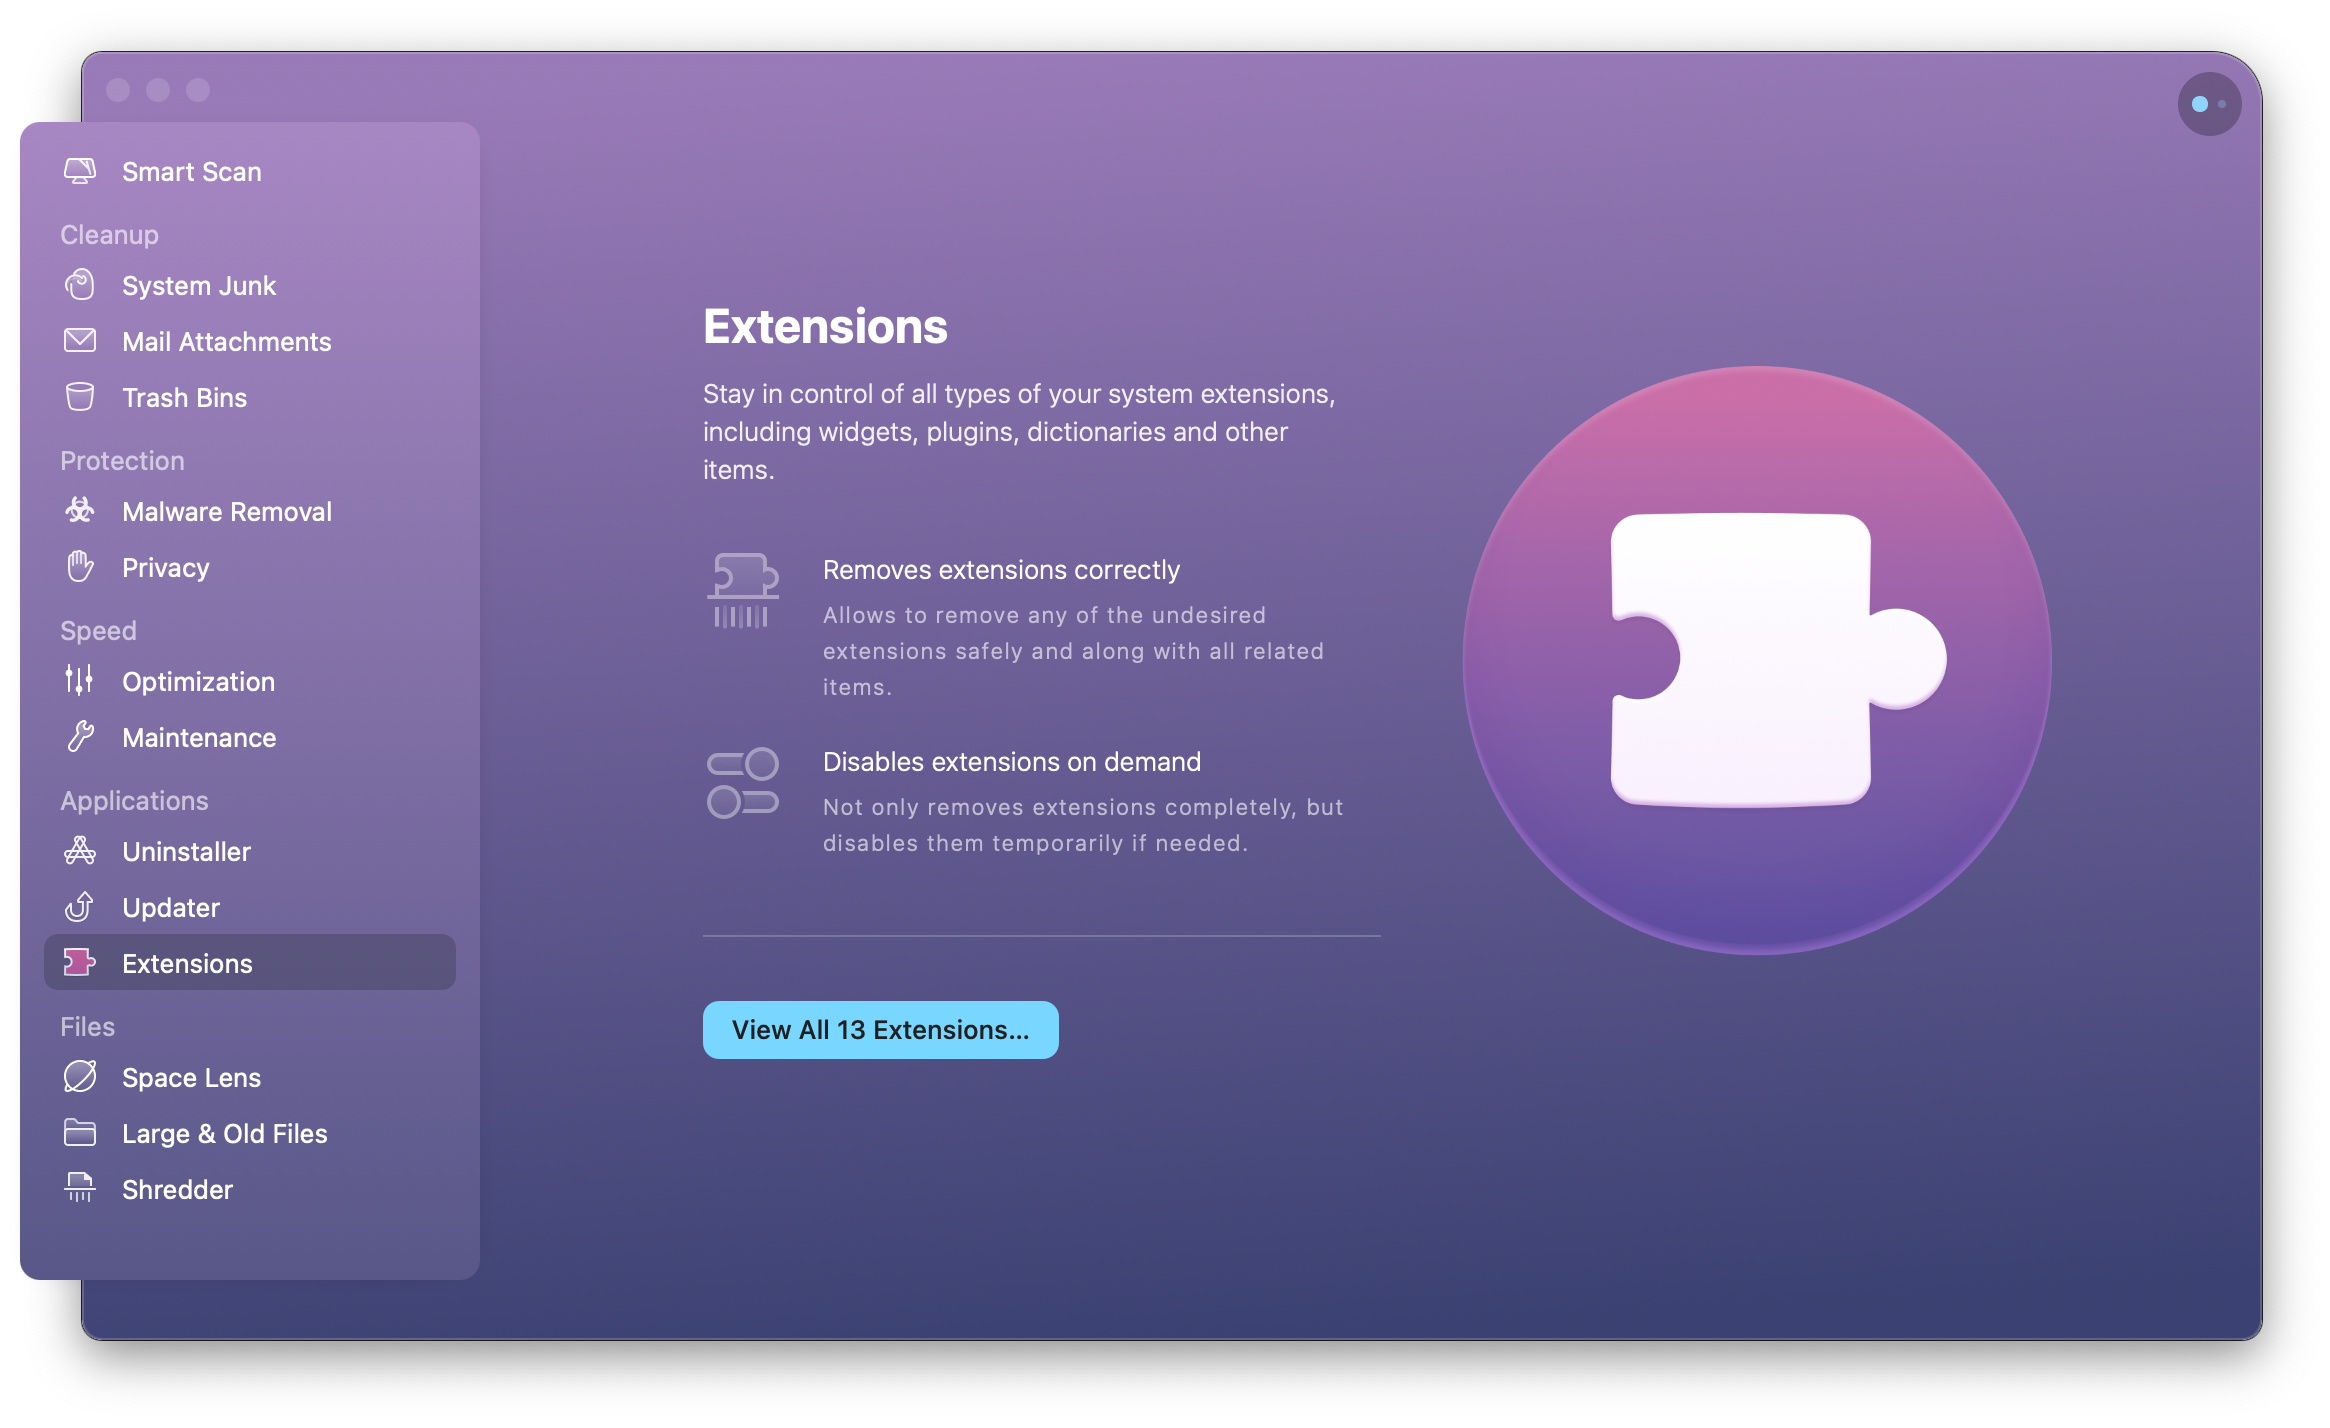 view the list of extensions